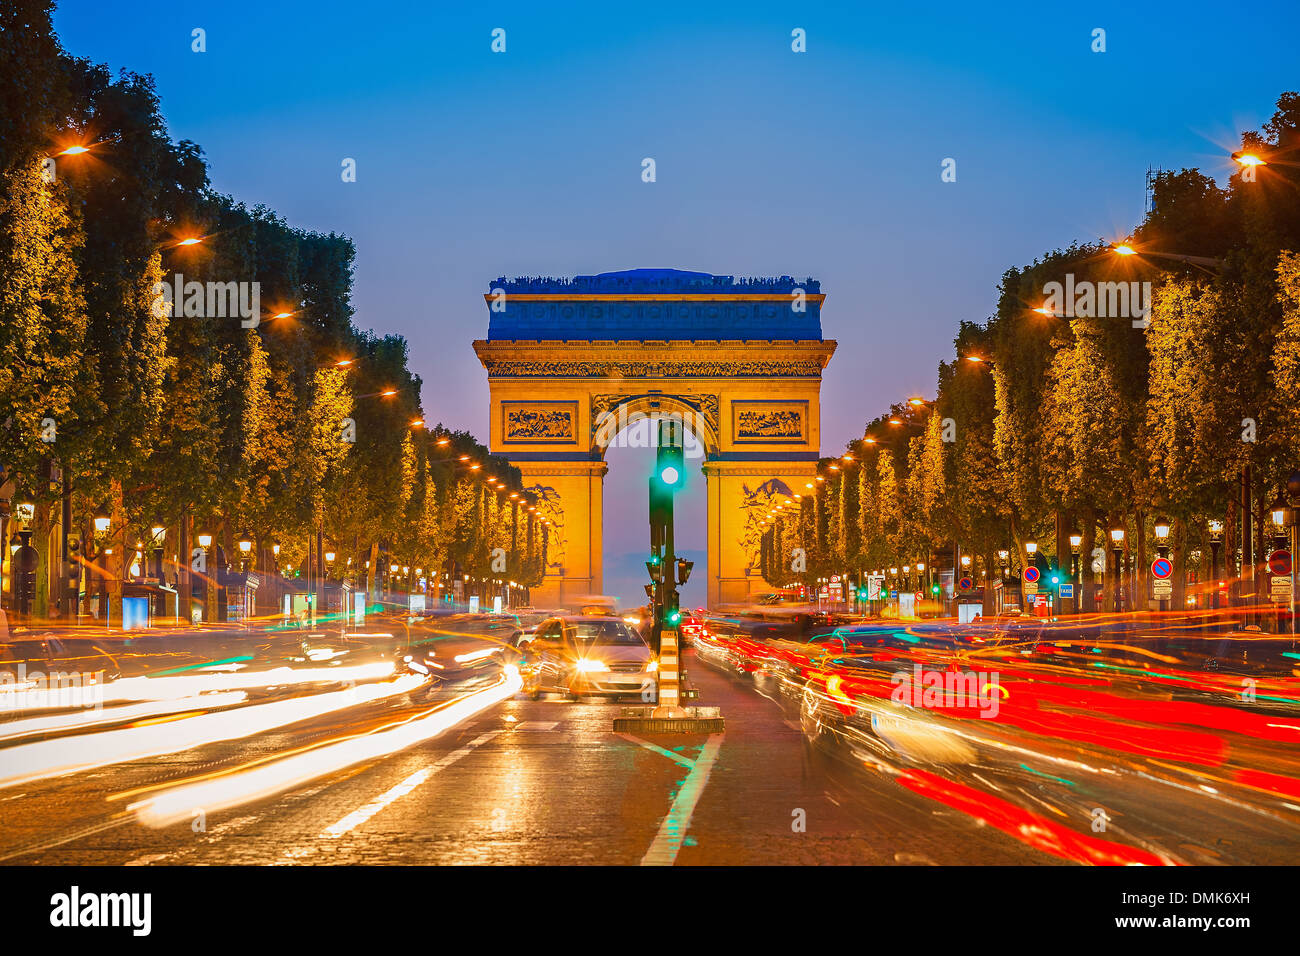 Arch of Triumph at night - Stock Image